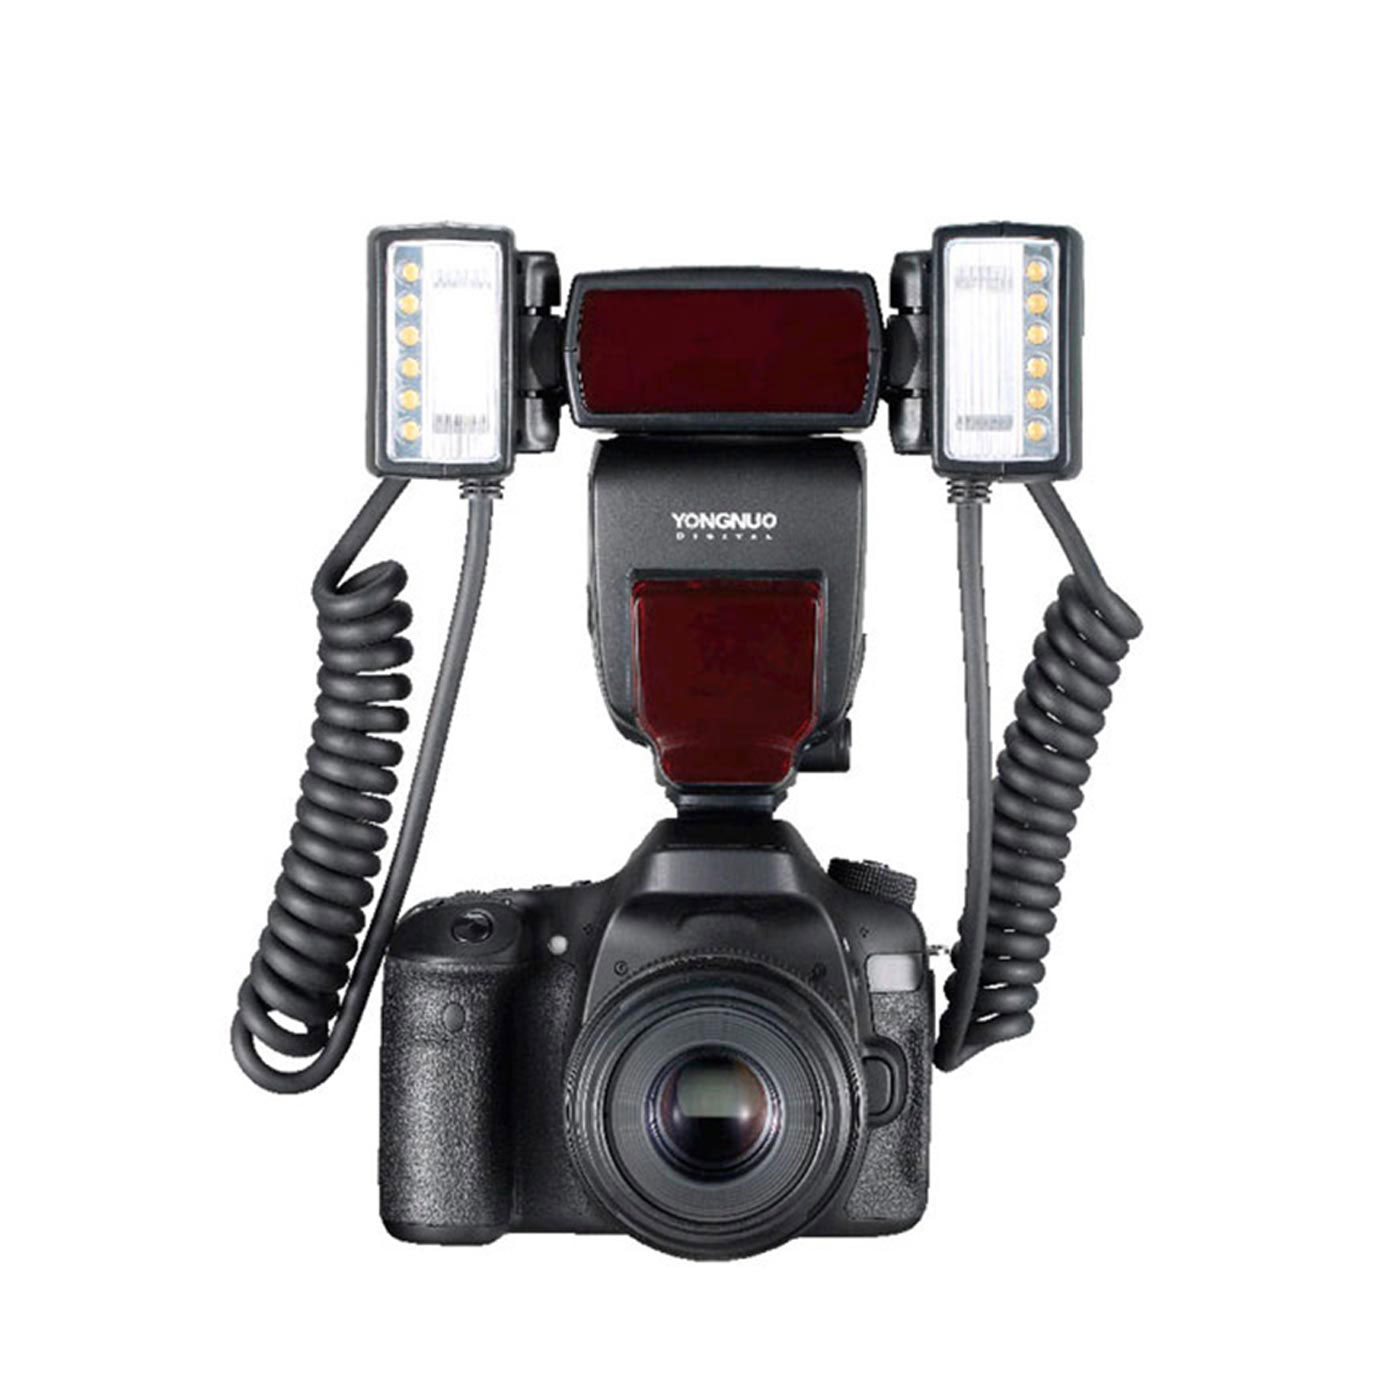 Yongnuo YN-24EX TTL Macro Twin Lite Flash for Canon